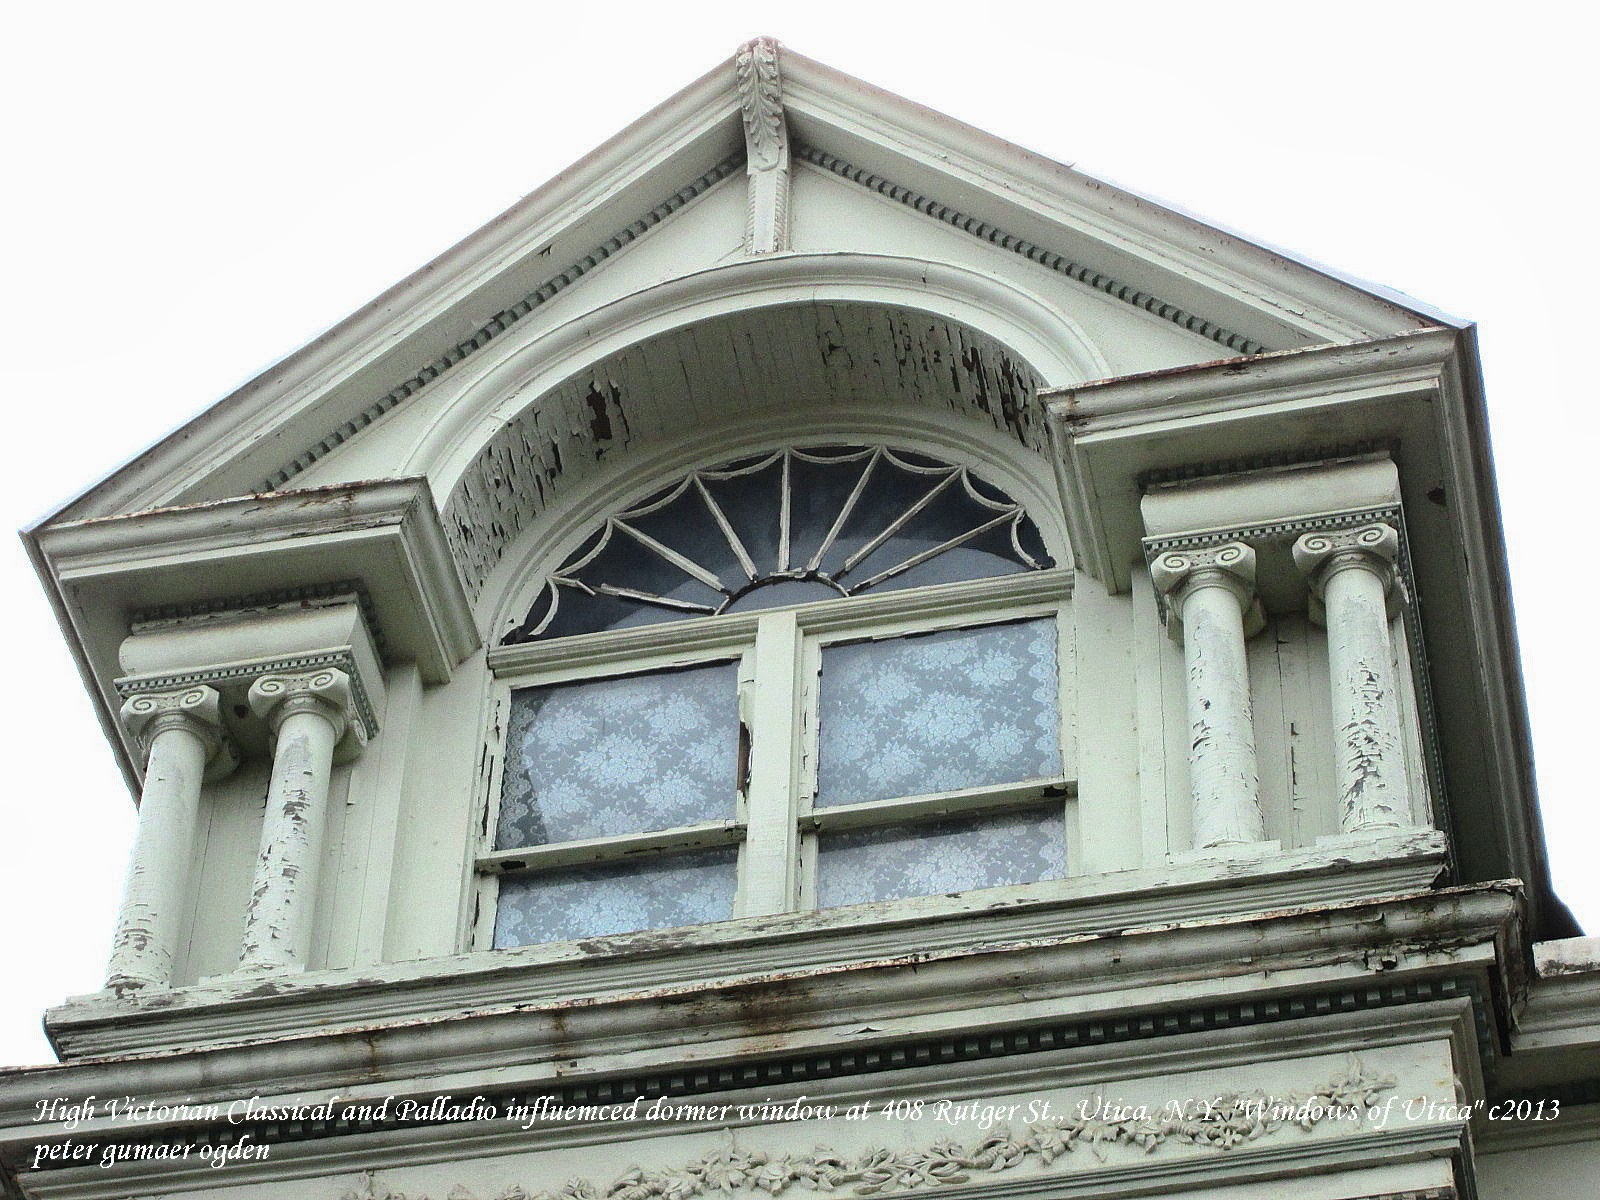 High Victorian Dormer Window With Palladian Influence Ionic Columns And Rising Or Setting Sun Fan Light At One Of Rutger Streets Better Preserved